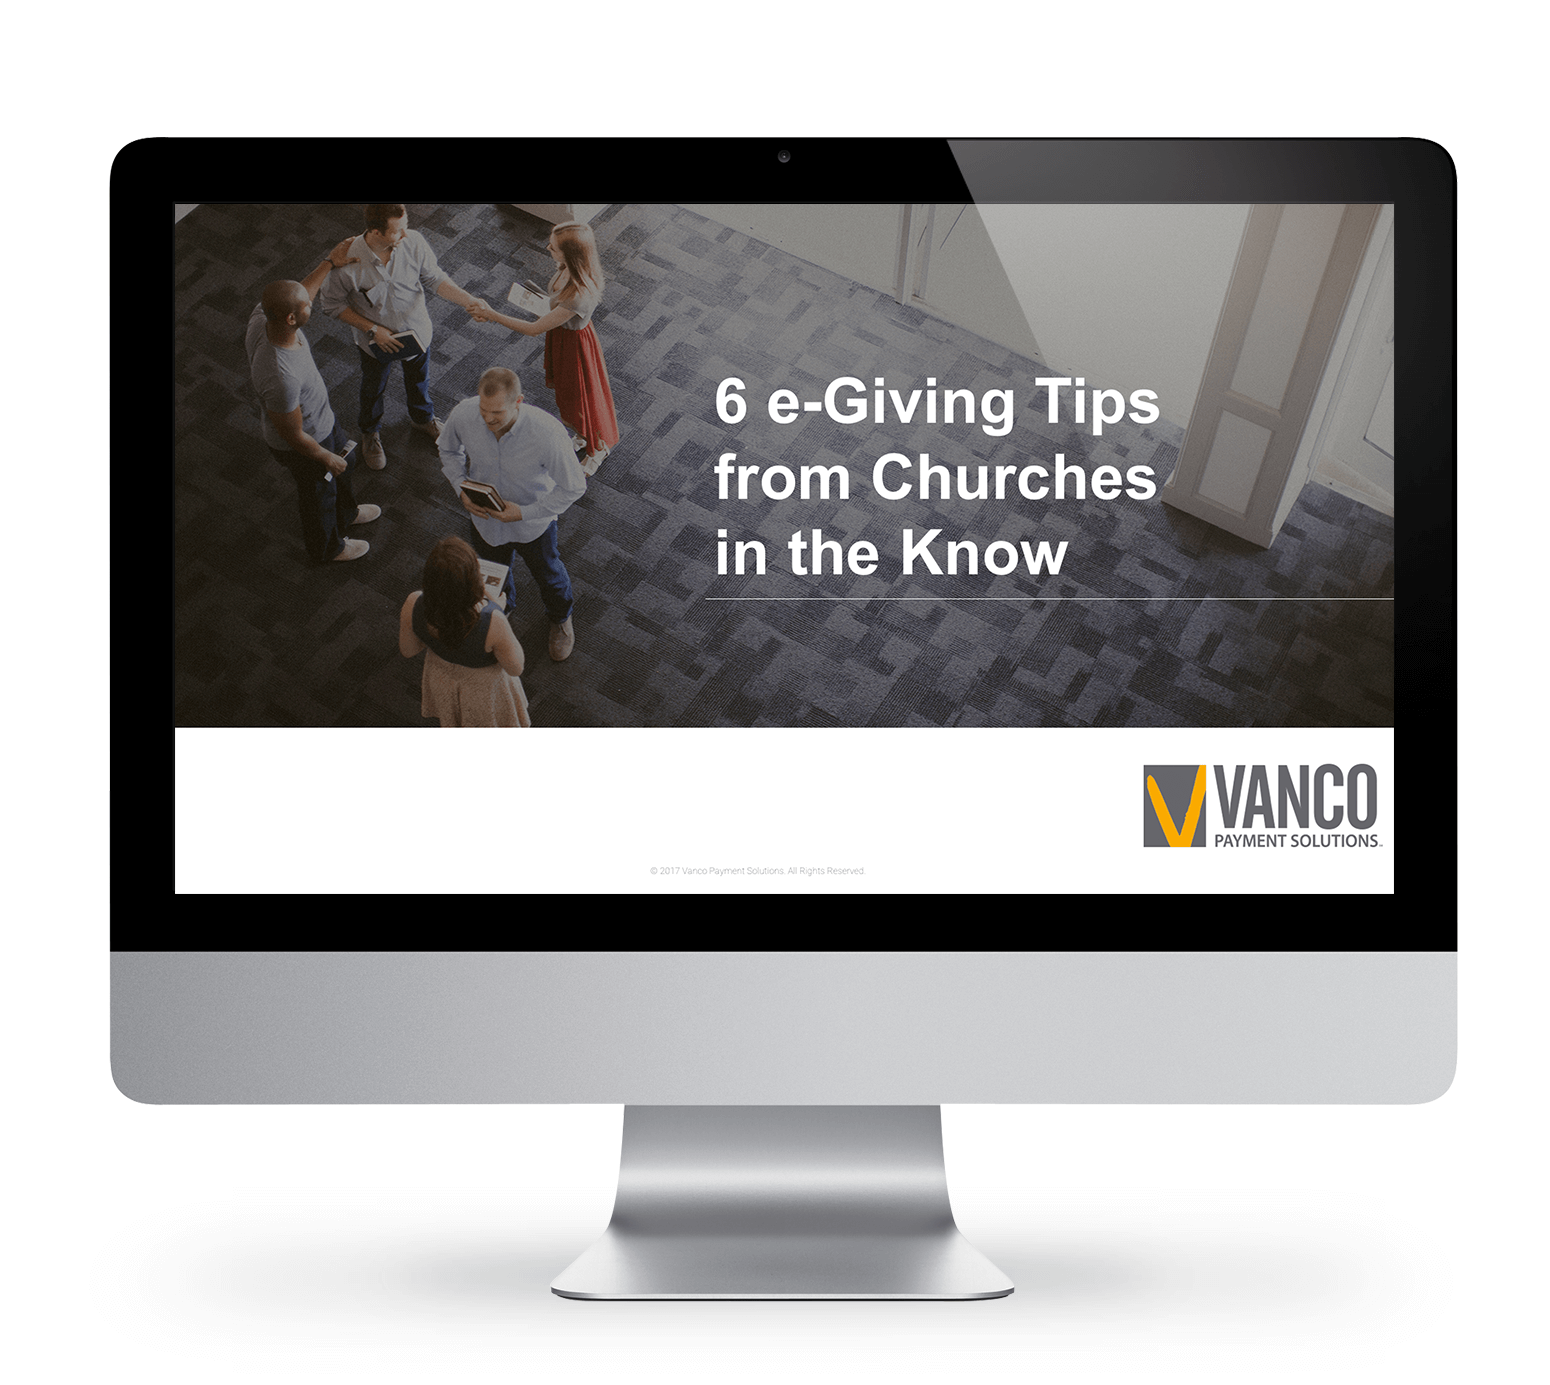 6 Tips from Churches in the Know